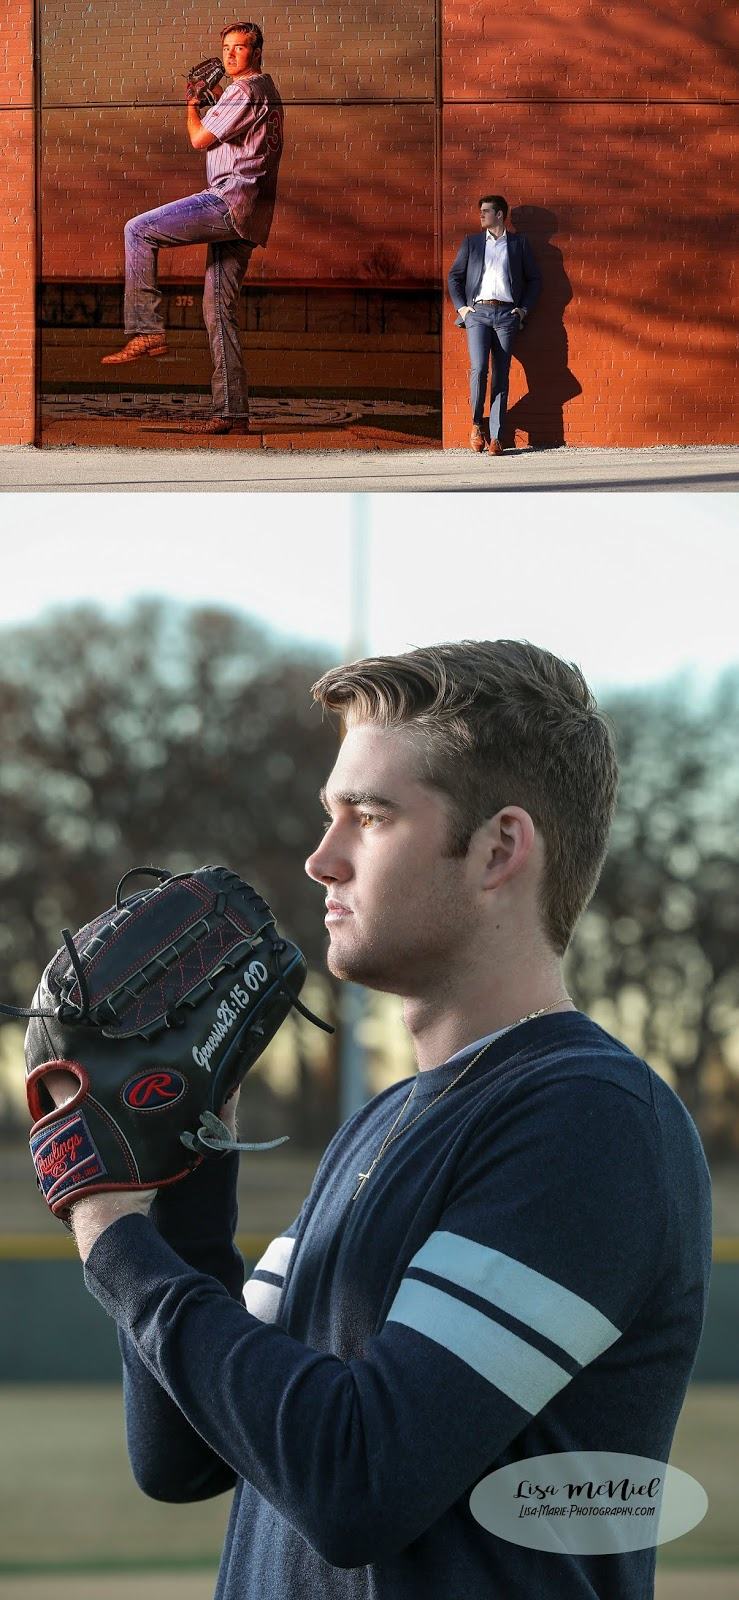 handsome young man by brick wall with him pitching baseball superimposed